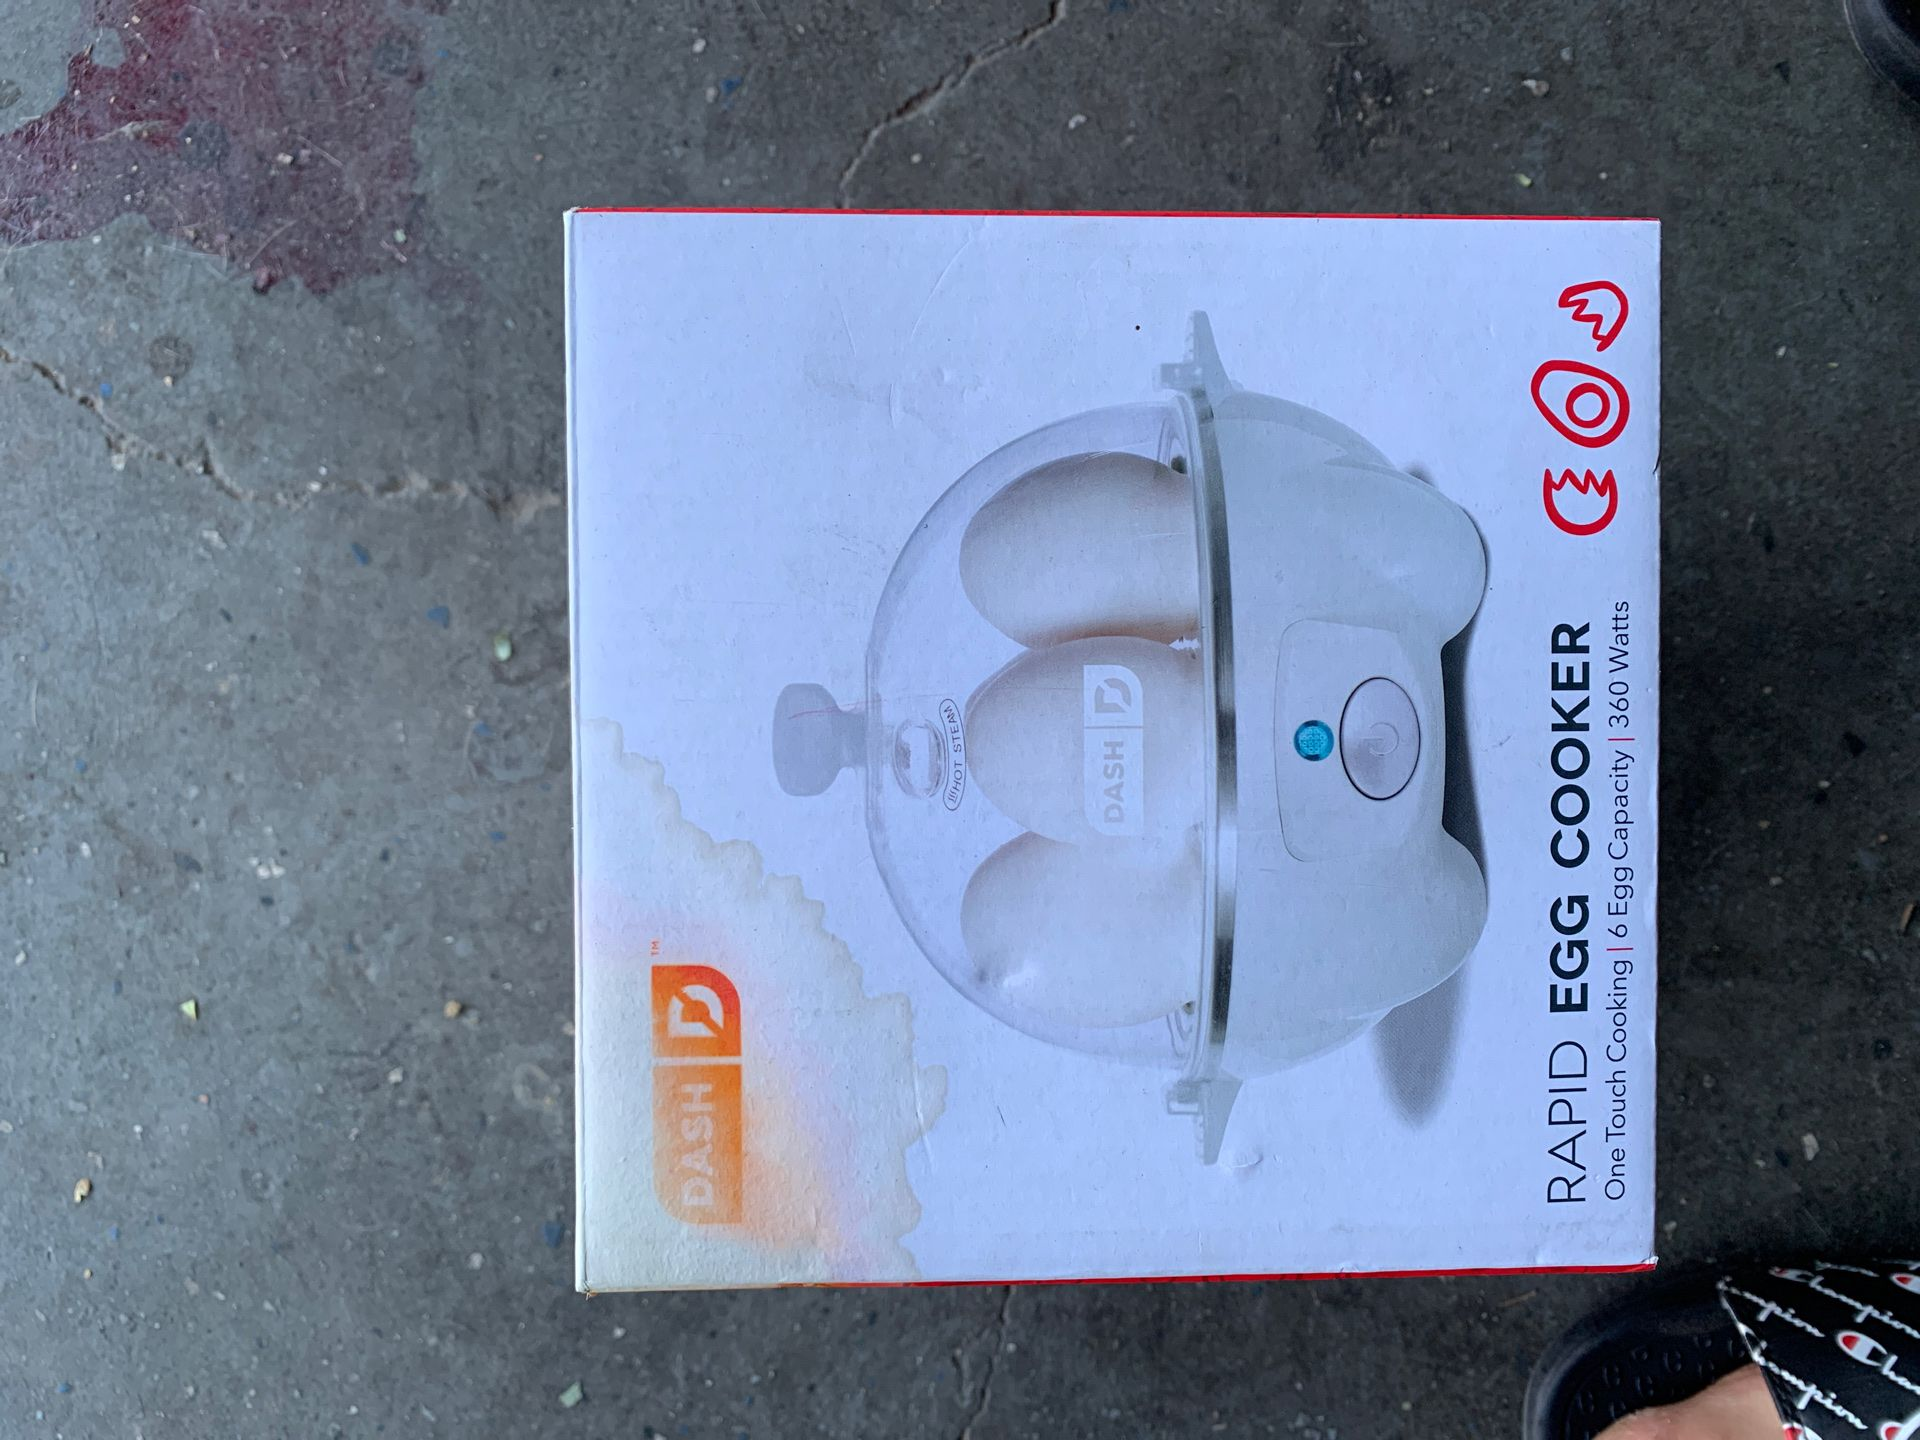 Egg cooker cooks eggs quickly electronically